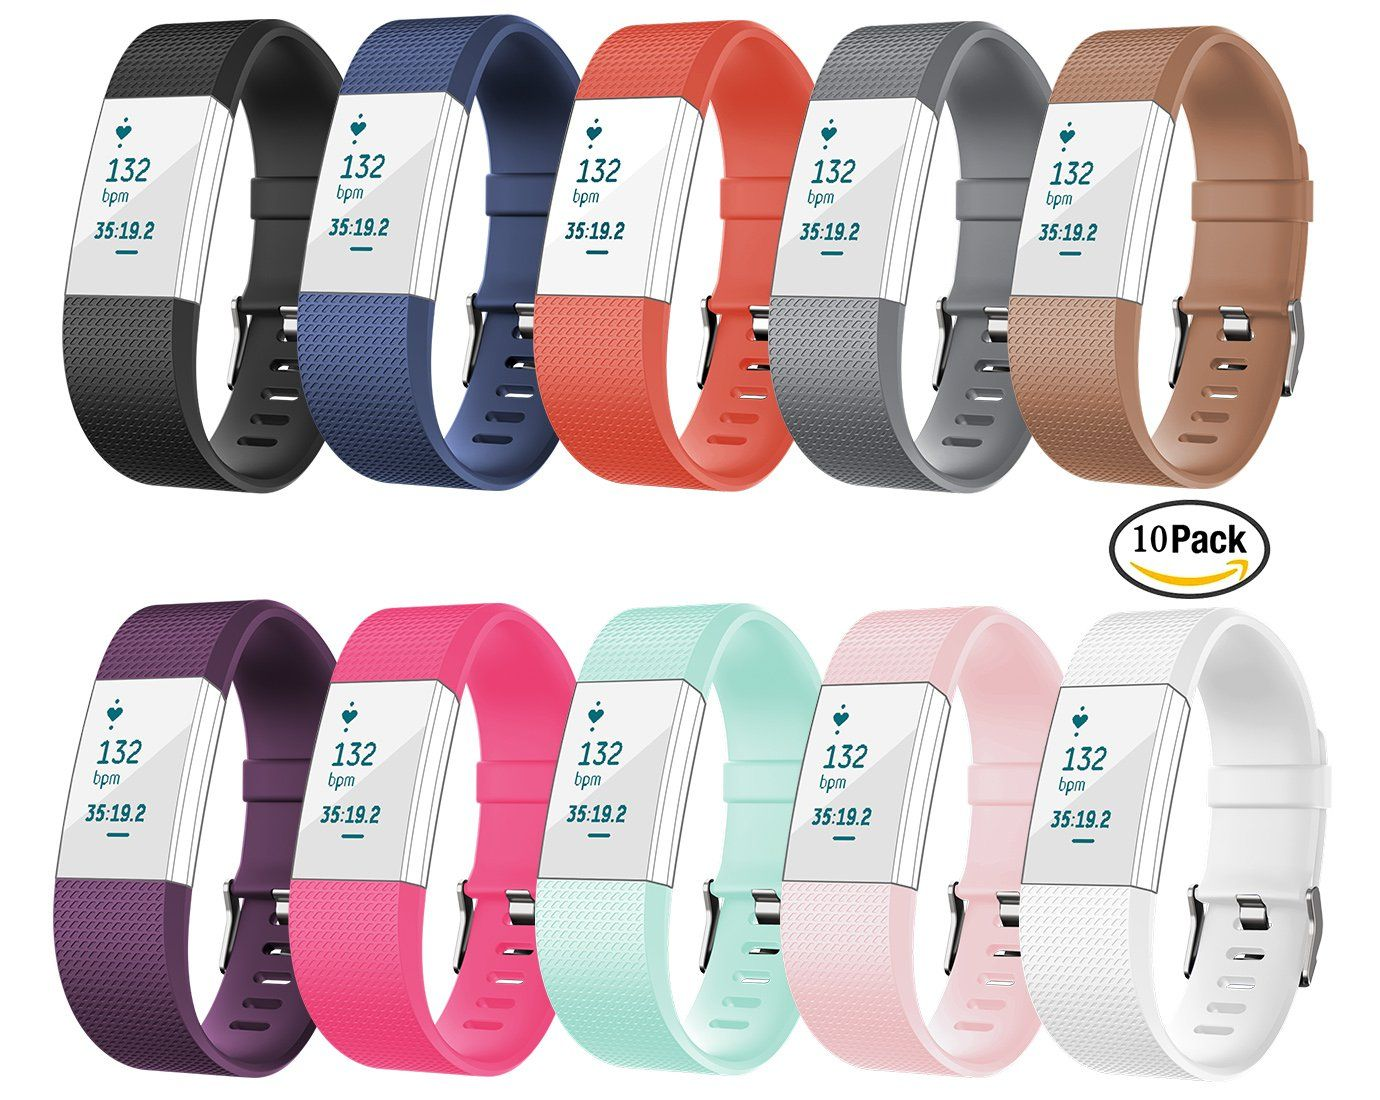 Image result for Fitbit charge 2 vs charge 3f